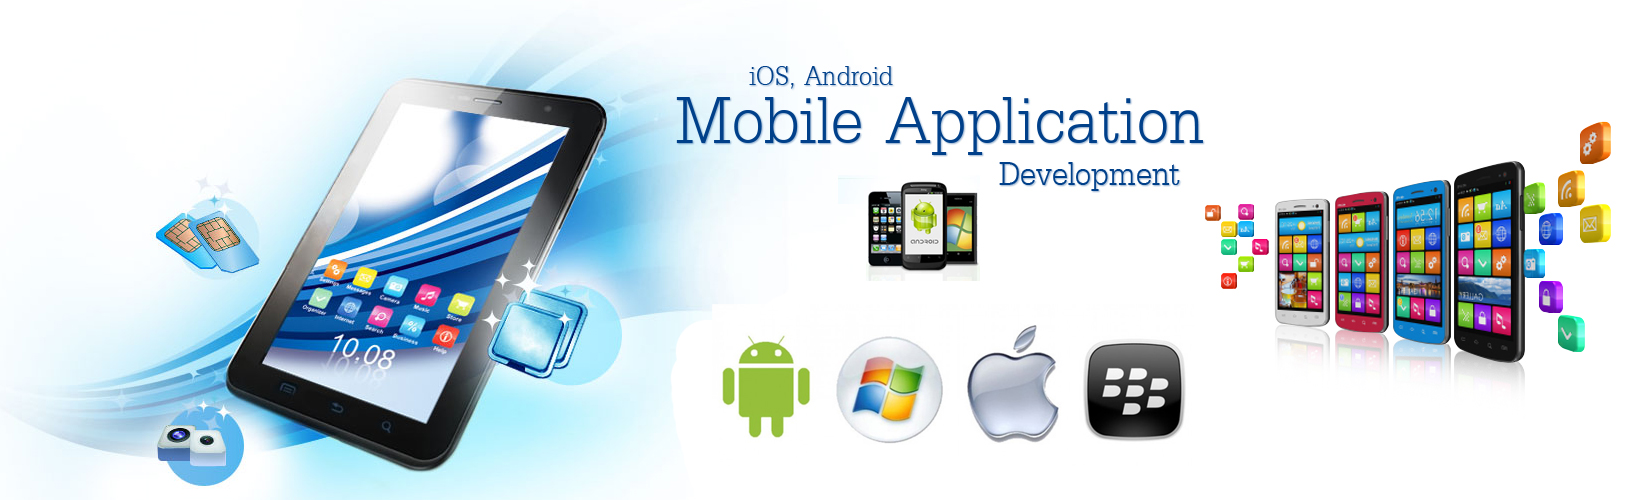 Top Mobile Application Development Company in India Anques